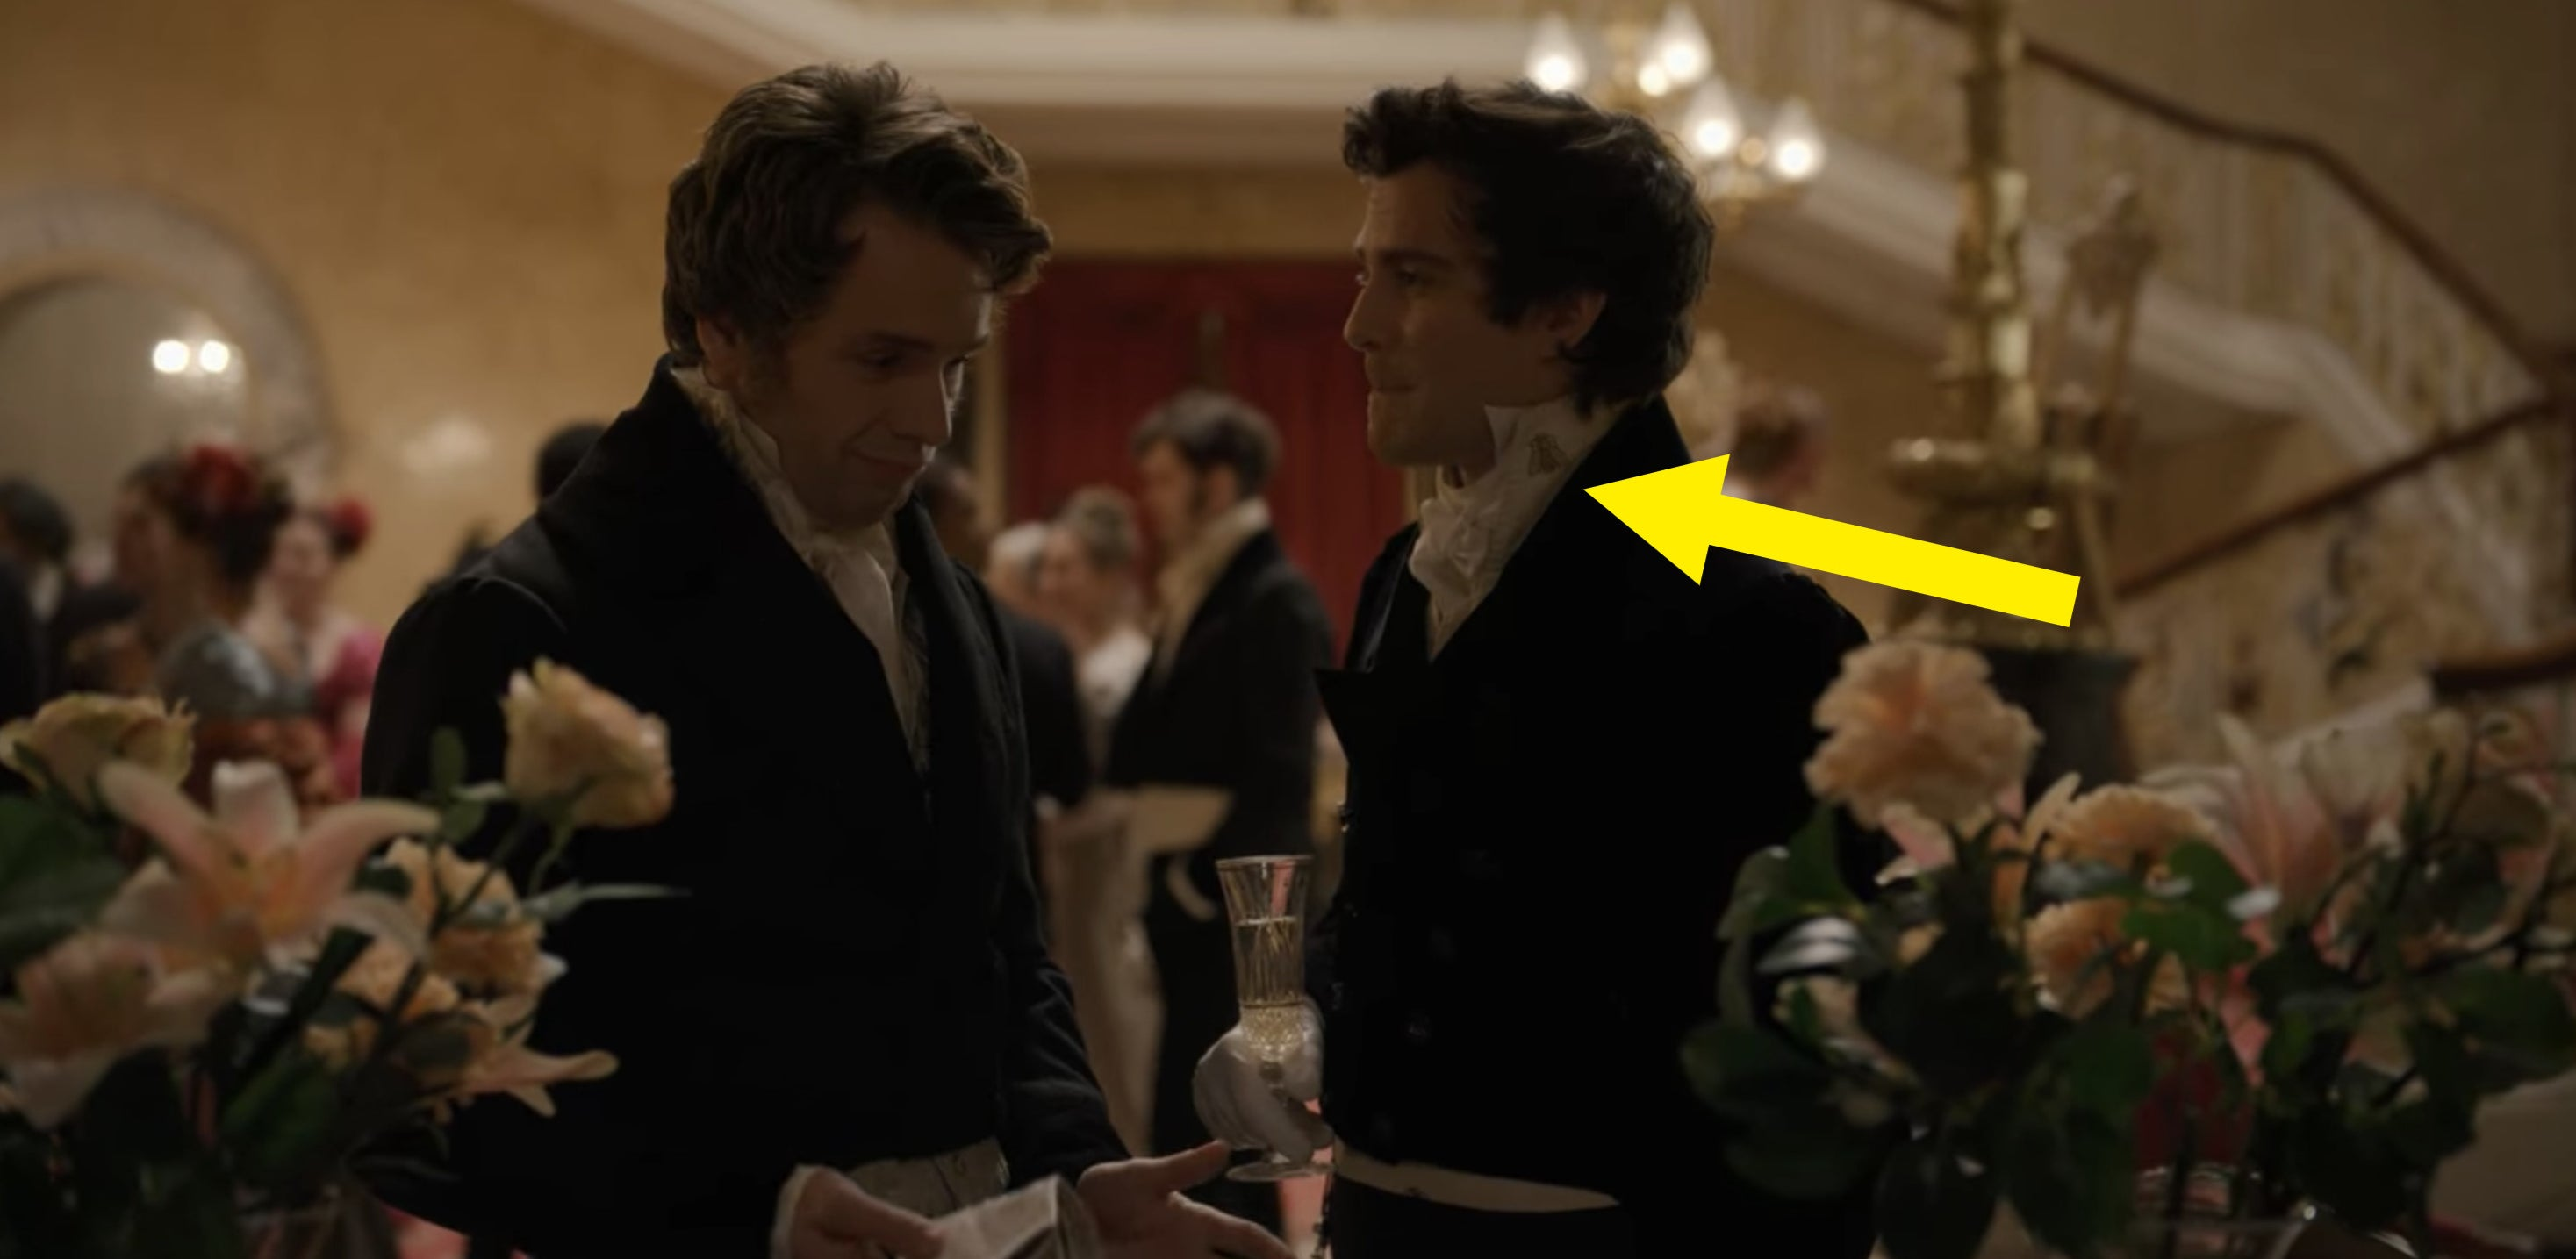 An arrow pointing towards Benedict's bee brooch on his collar